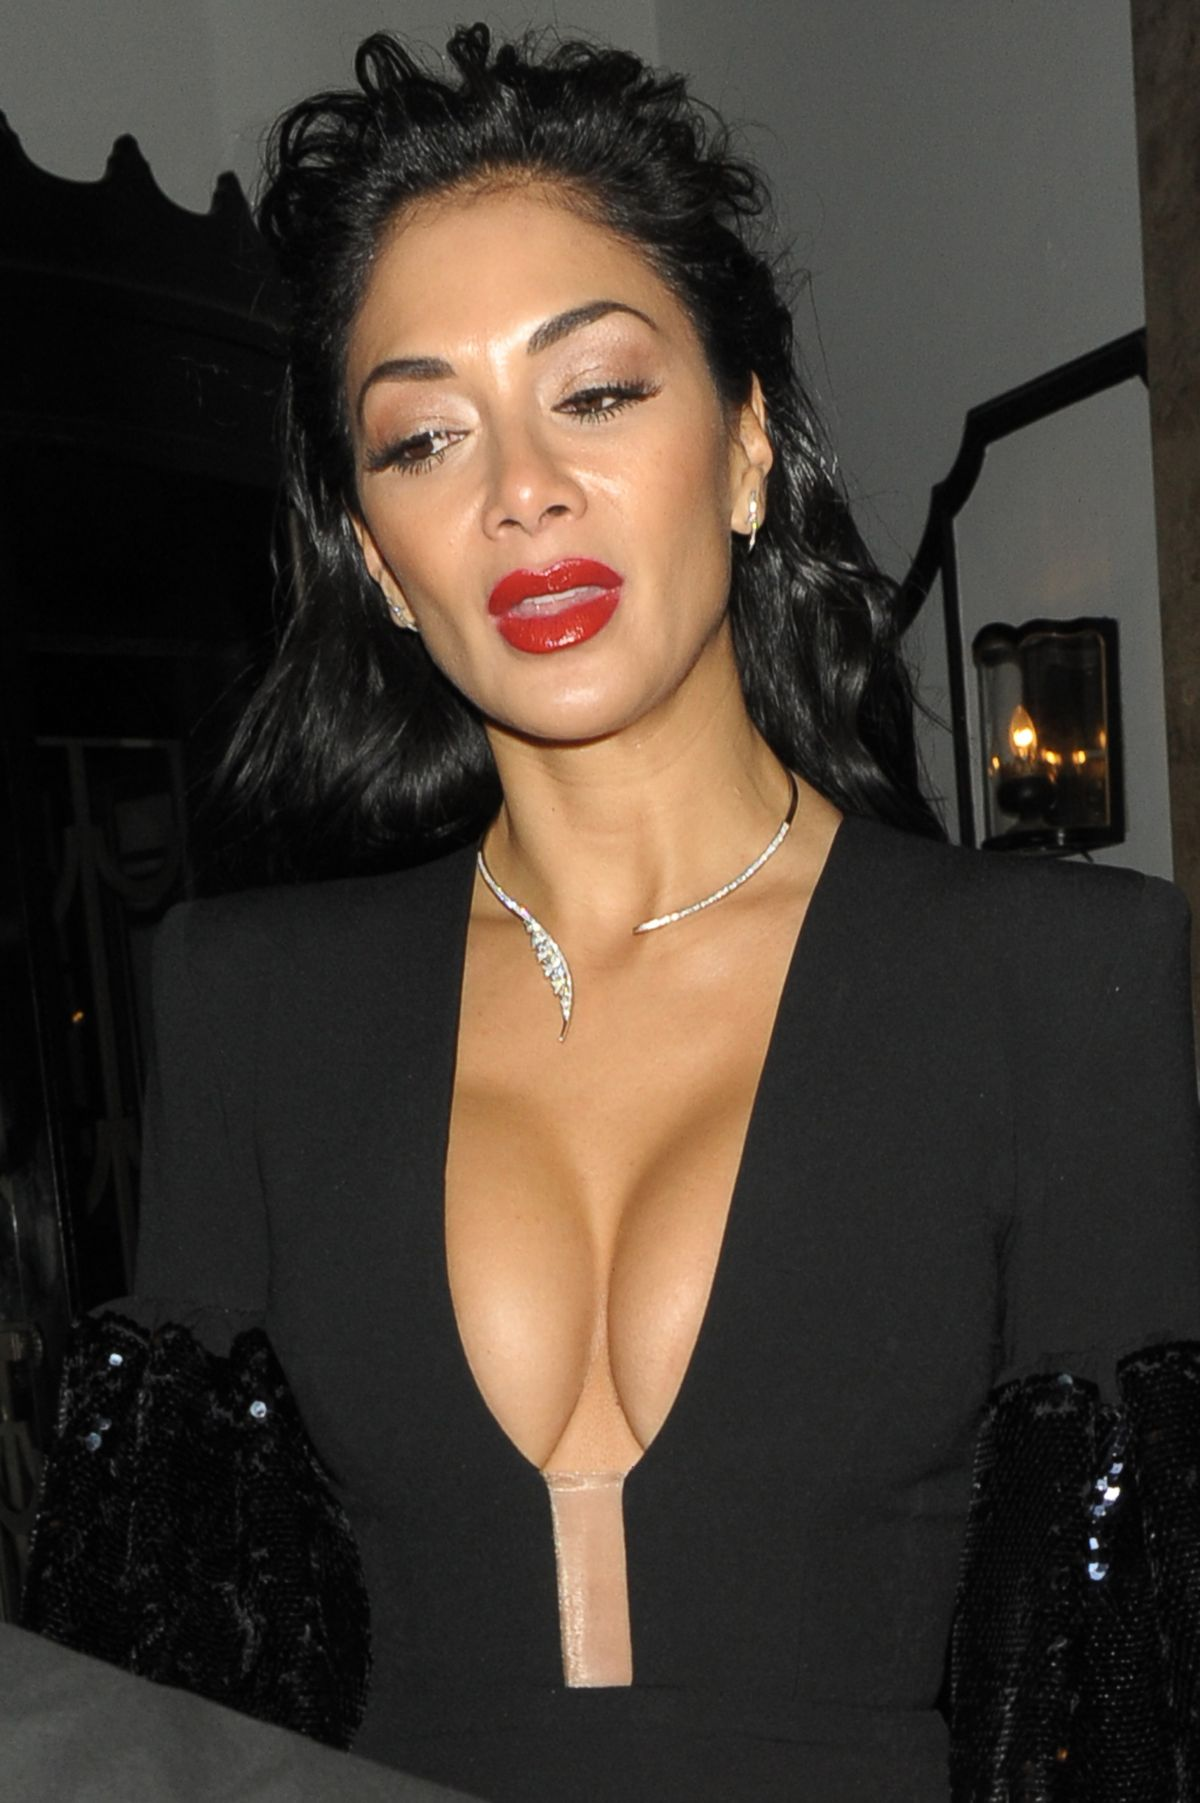 NICOLE SCHERZINGER at Brilliant is Beautiful VIP Gala ... Nicole Scherzinger